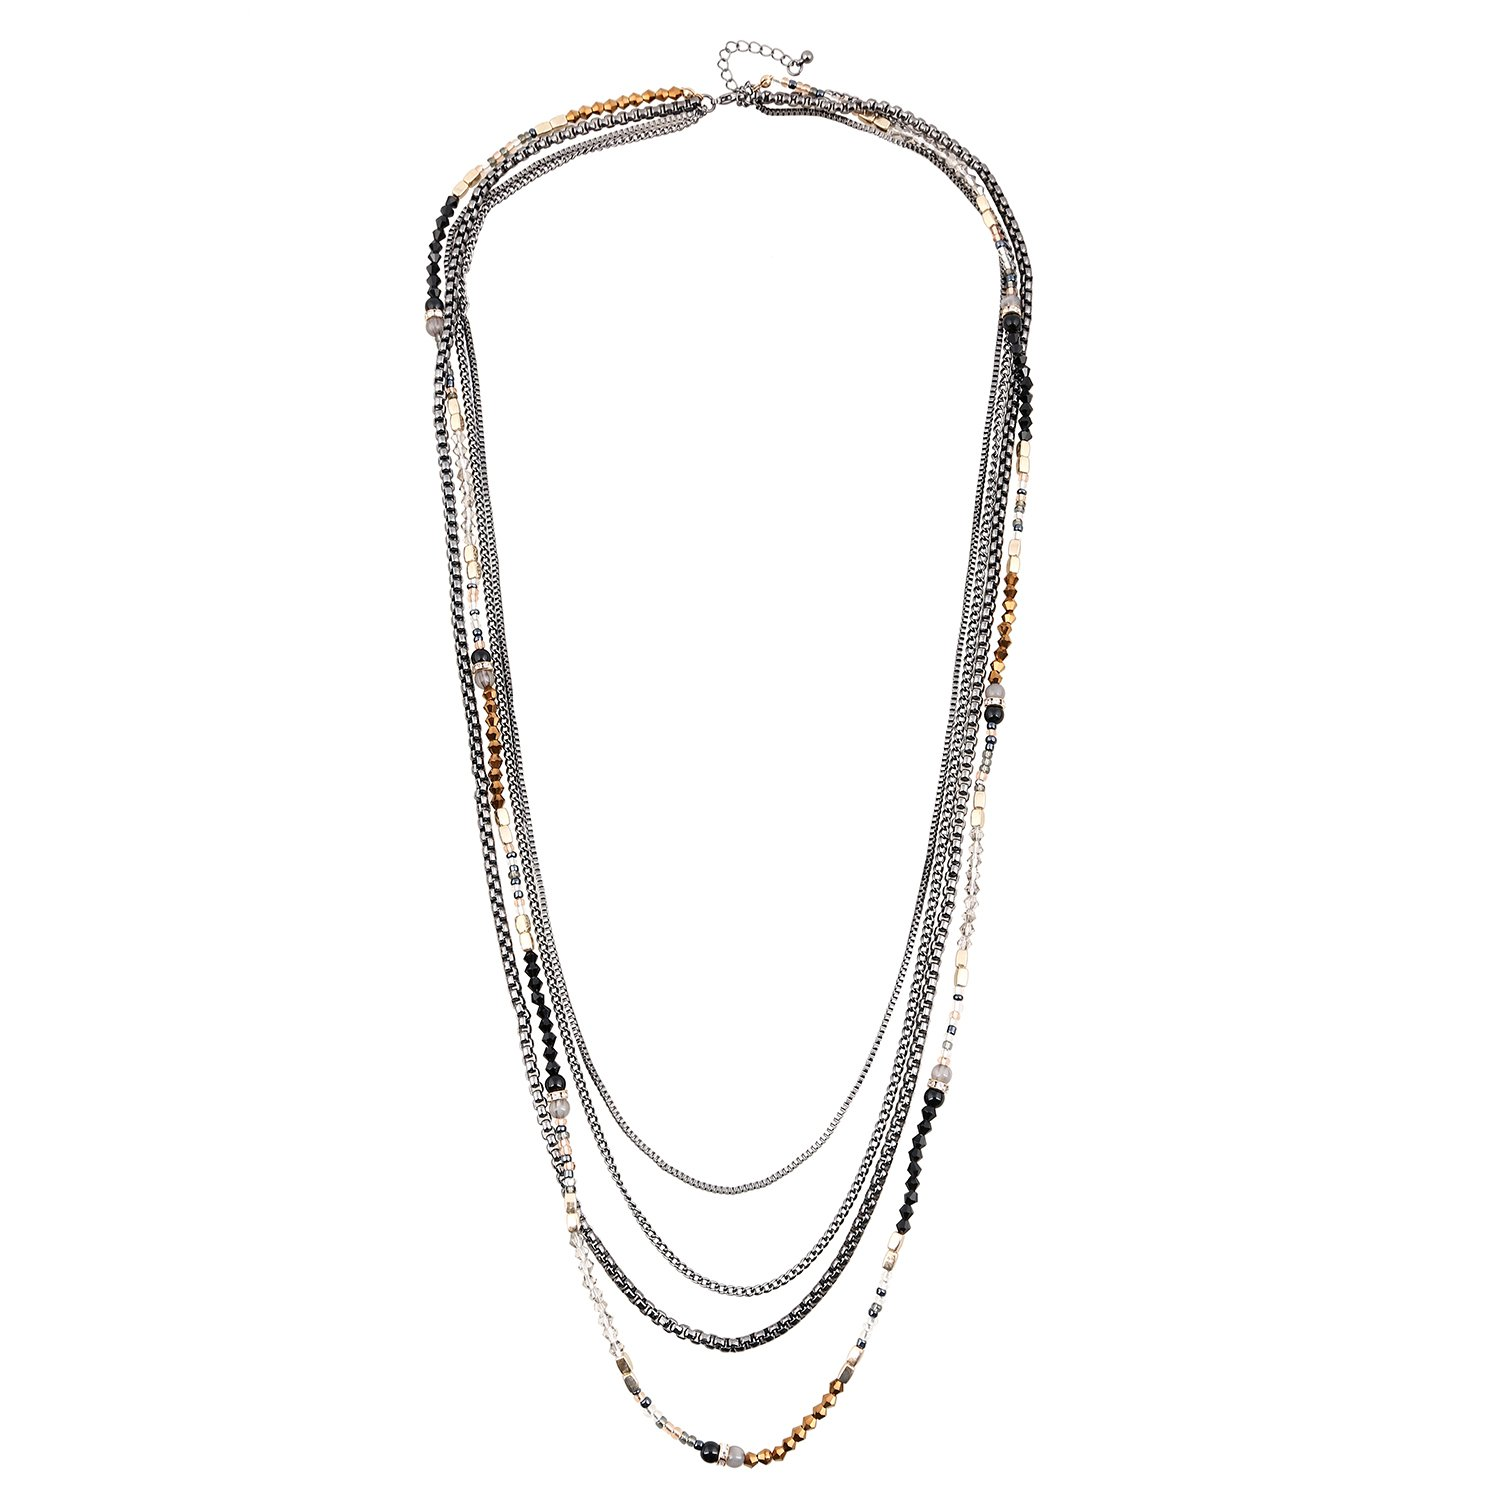 Lureme Simple Multi Layered Thin Beaded Chain Necklace for Women (nl005493) Yida nl005493-2